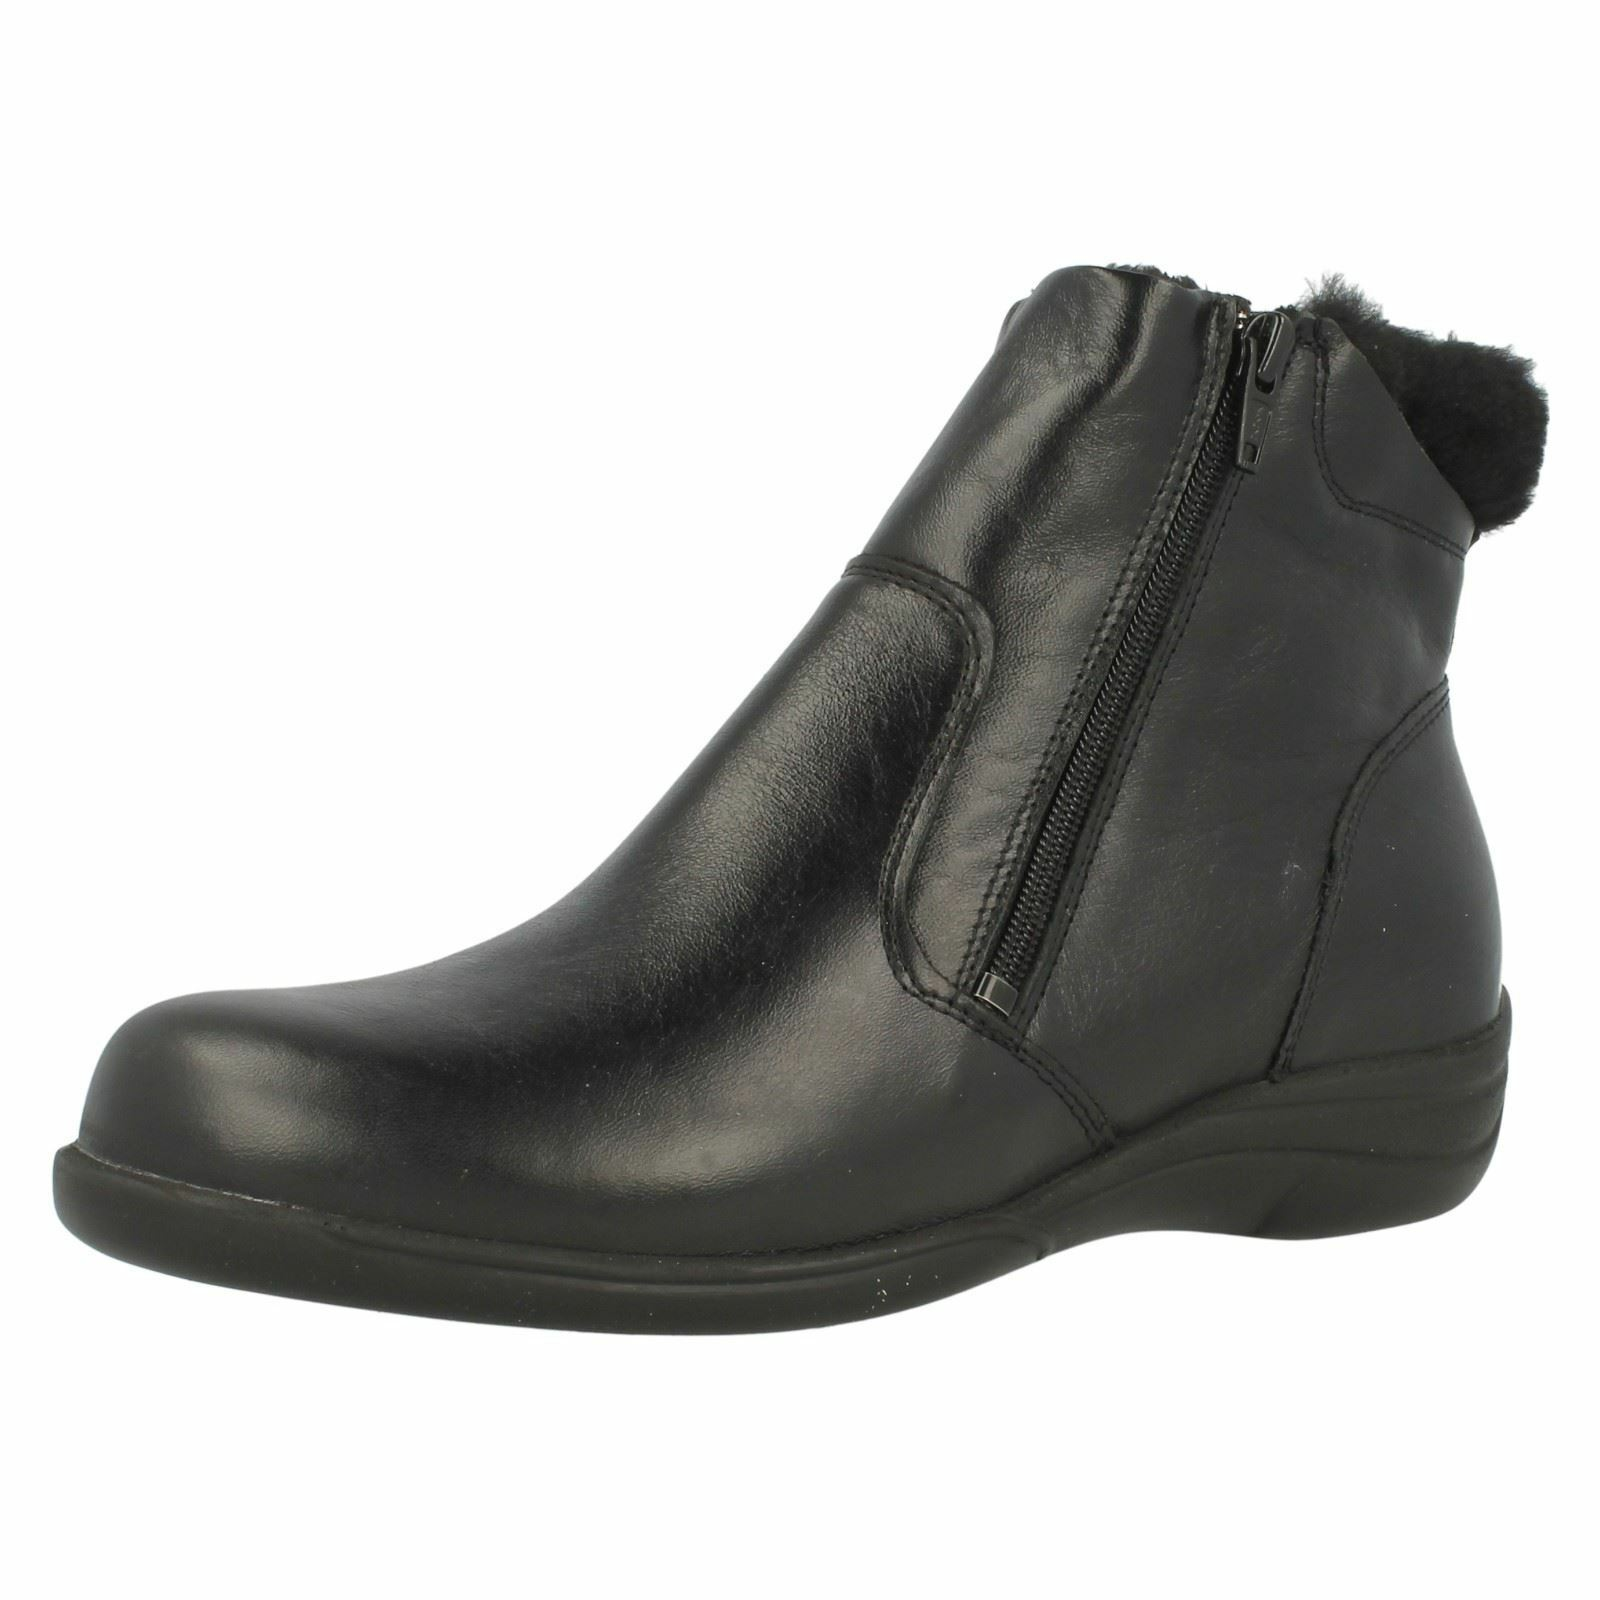 Ladies Easy B Wide Variable Fitting Double  Zip Leather Ankle stivali - Mia  prezzo all'ingrosso